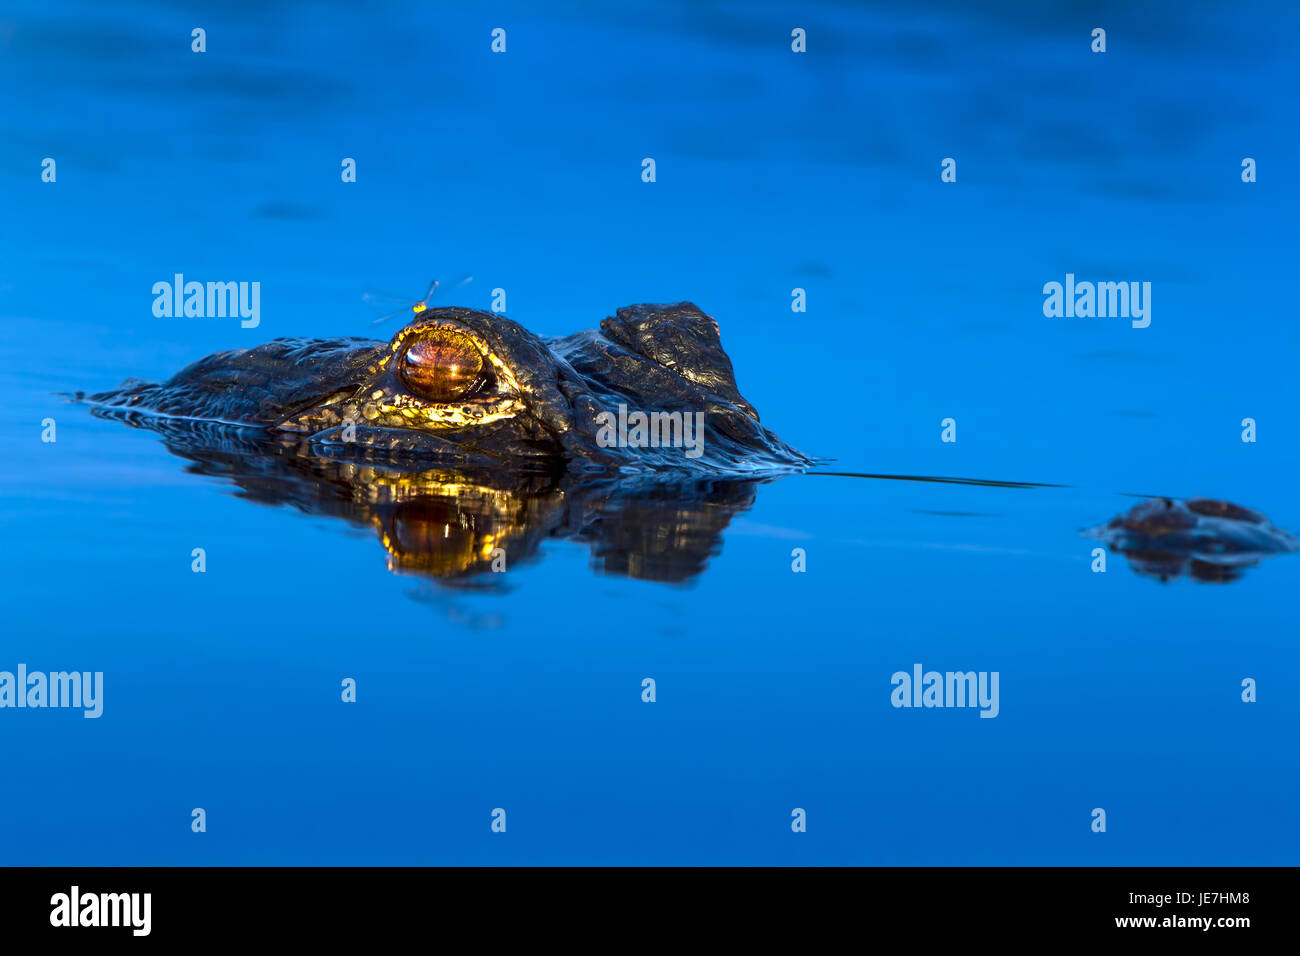 A large alligator at sunrise with a dragonfly perched on it's head. The American Alligator is an apex predator - Stock Image